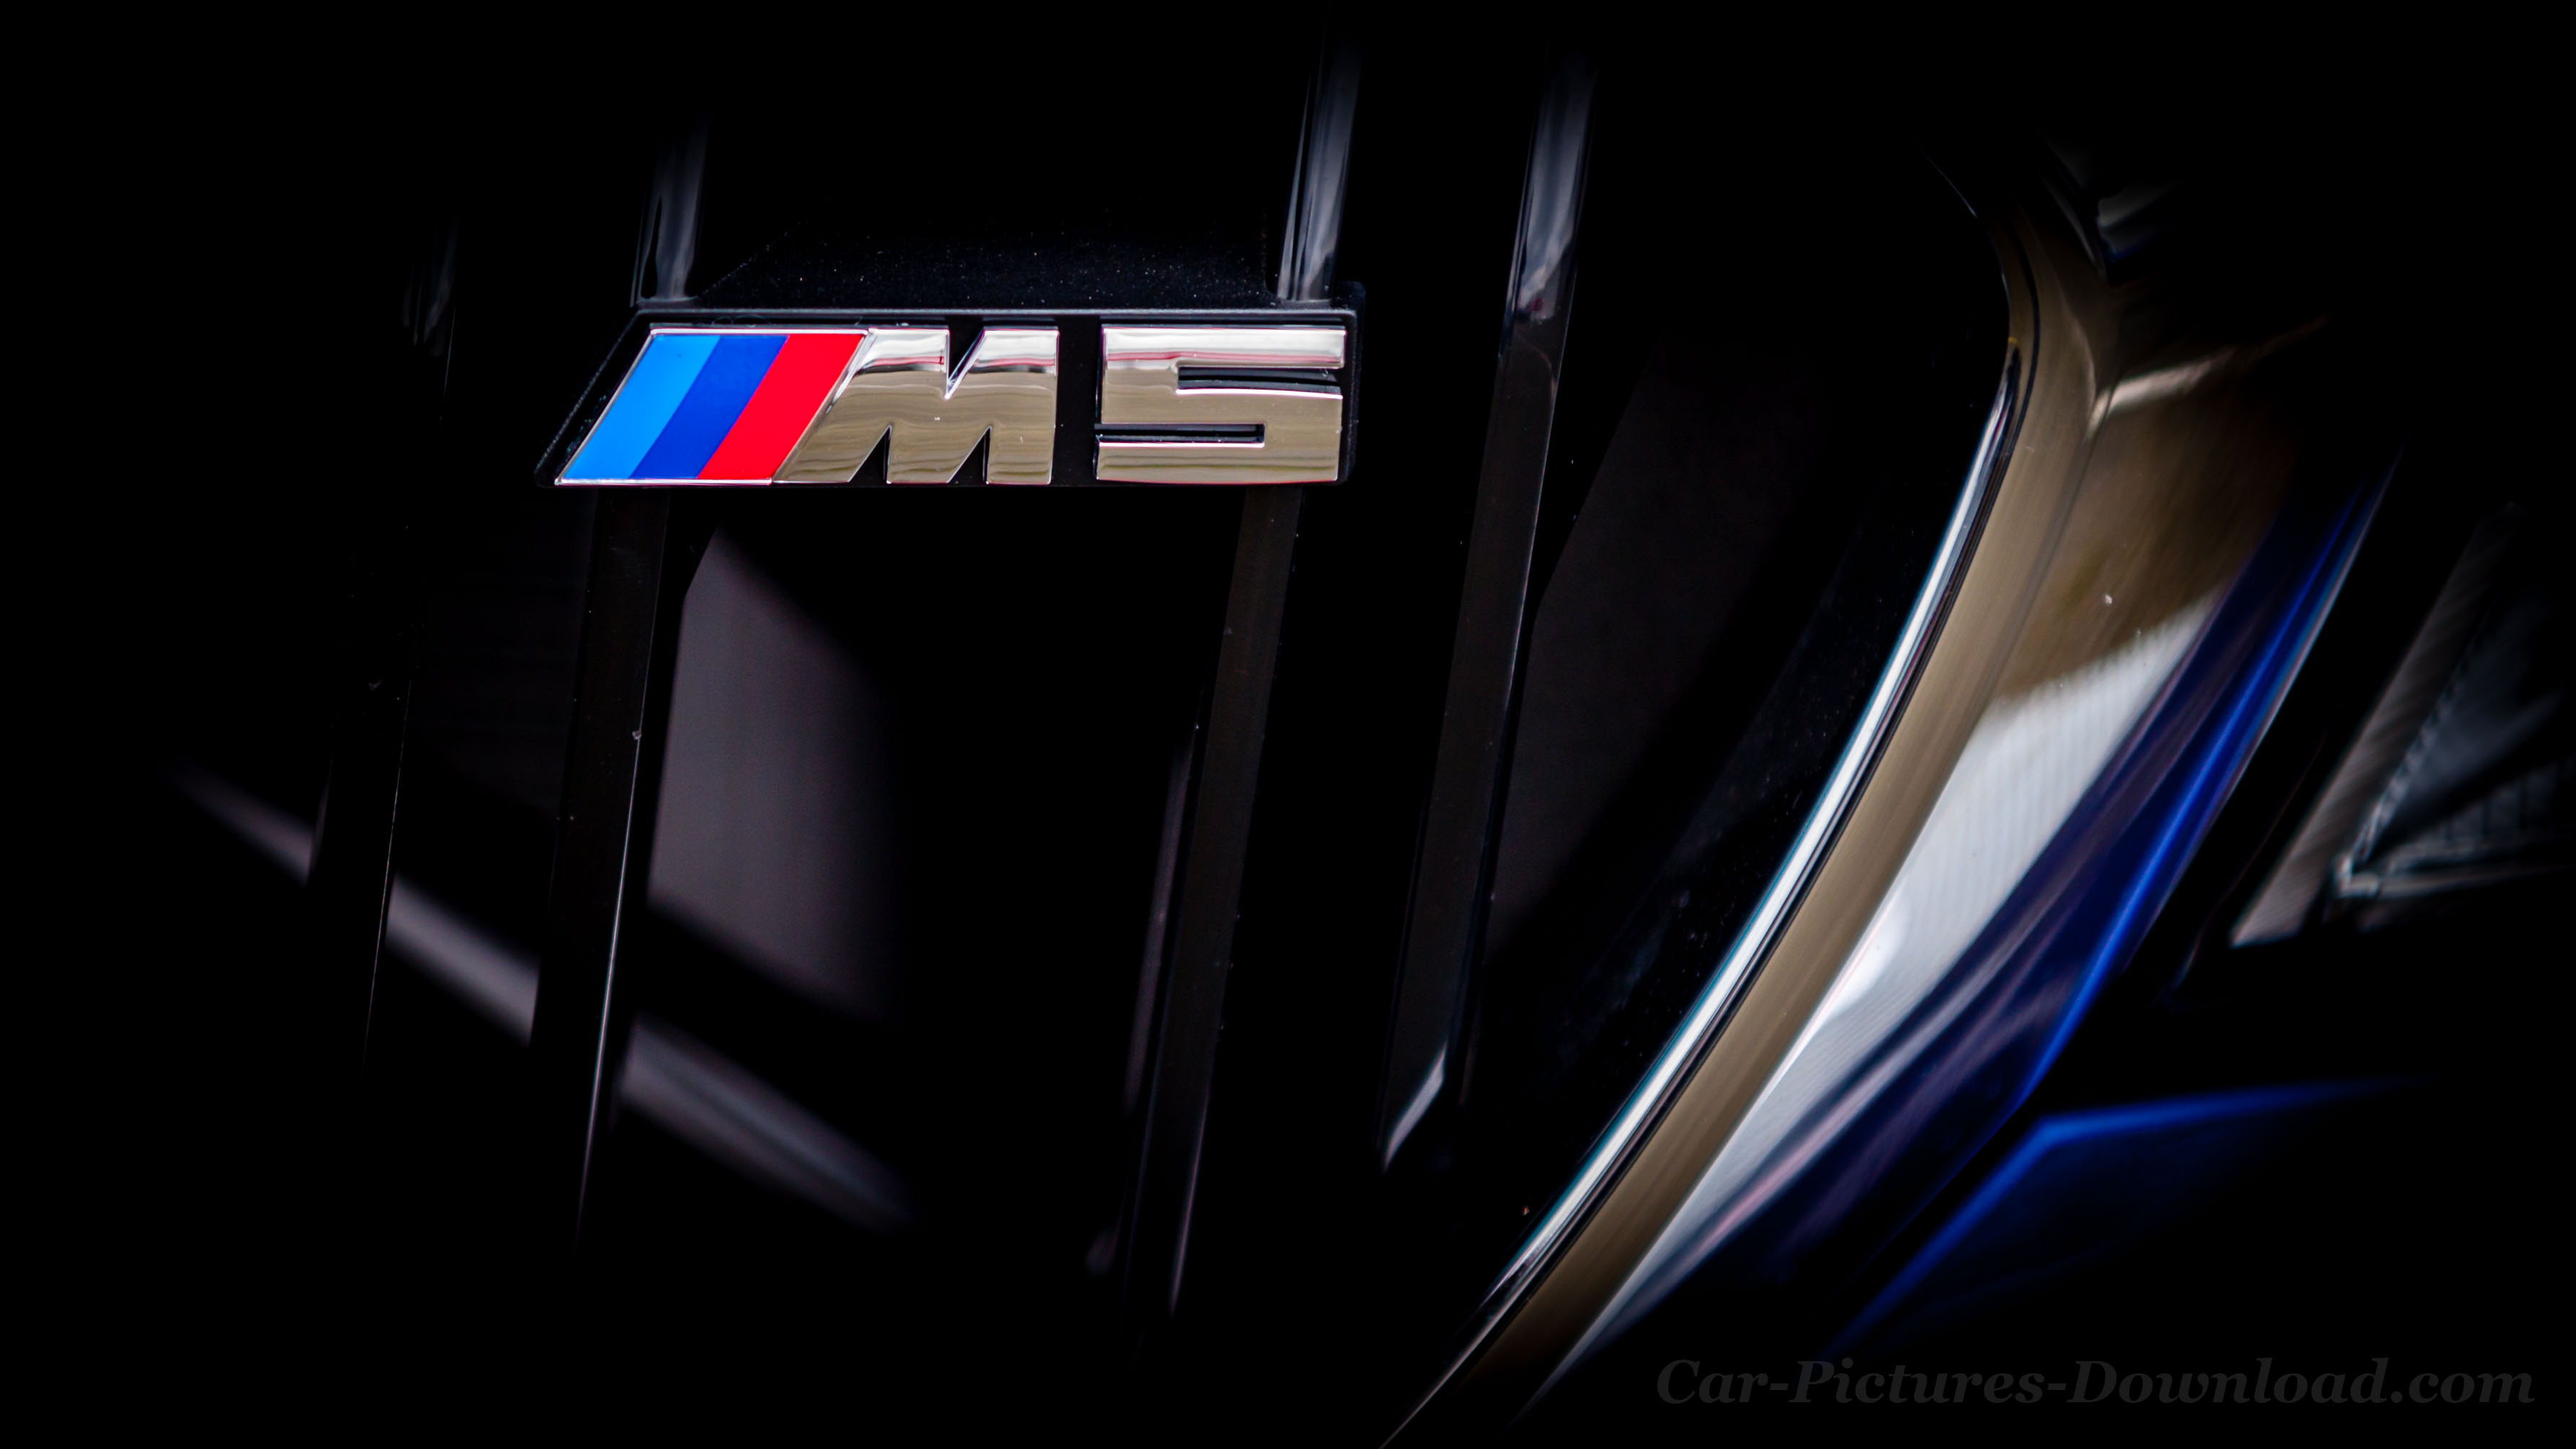 Tons of awesome logo bmw wallpapers to download for free. Bmw M Wallpapers Wallpaper Cave Bmw M Logo 3575x2011 Download Hd Wallpaper Wallpapertip